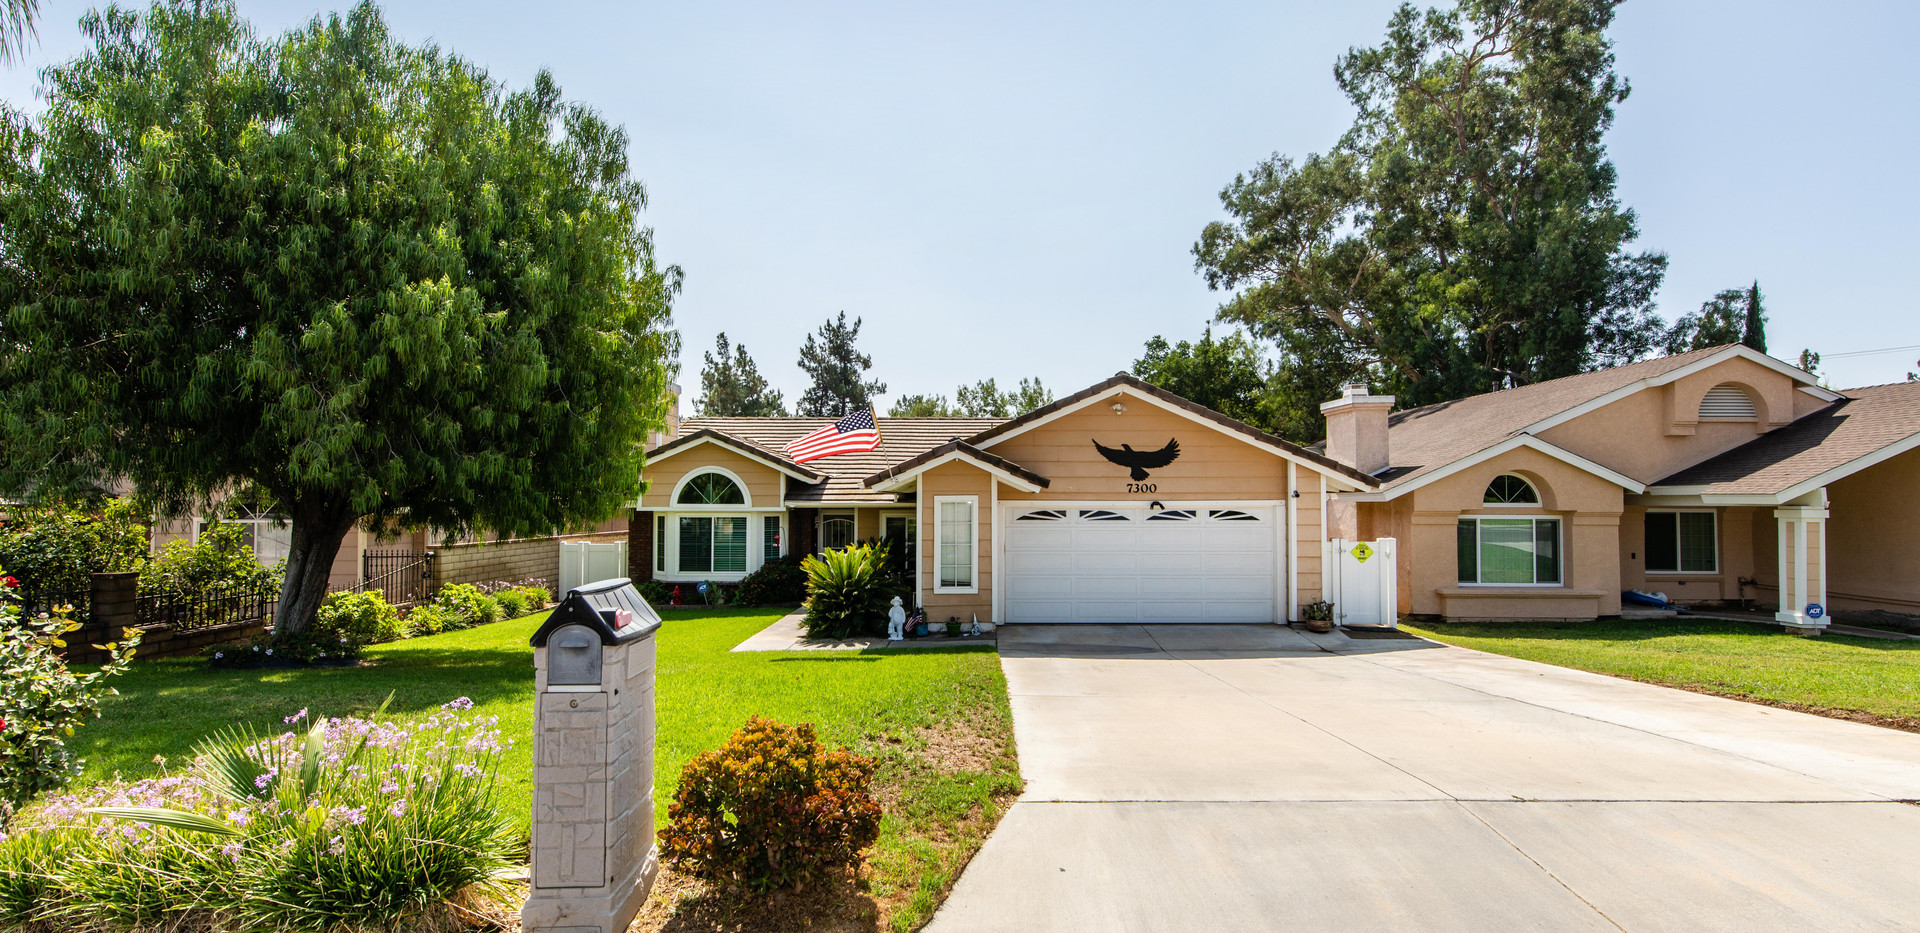 7300 Linares Ave-ext-7.jpg